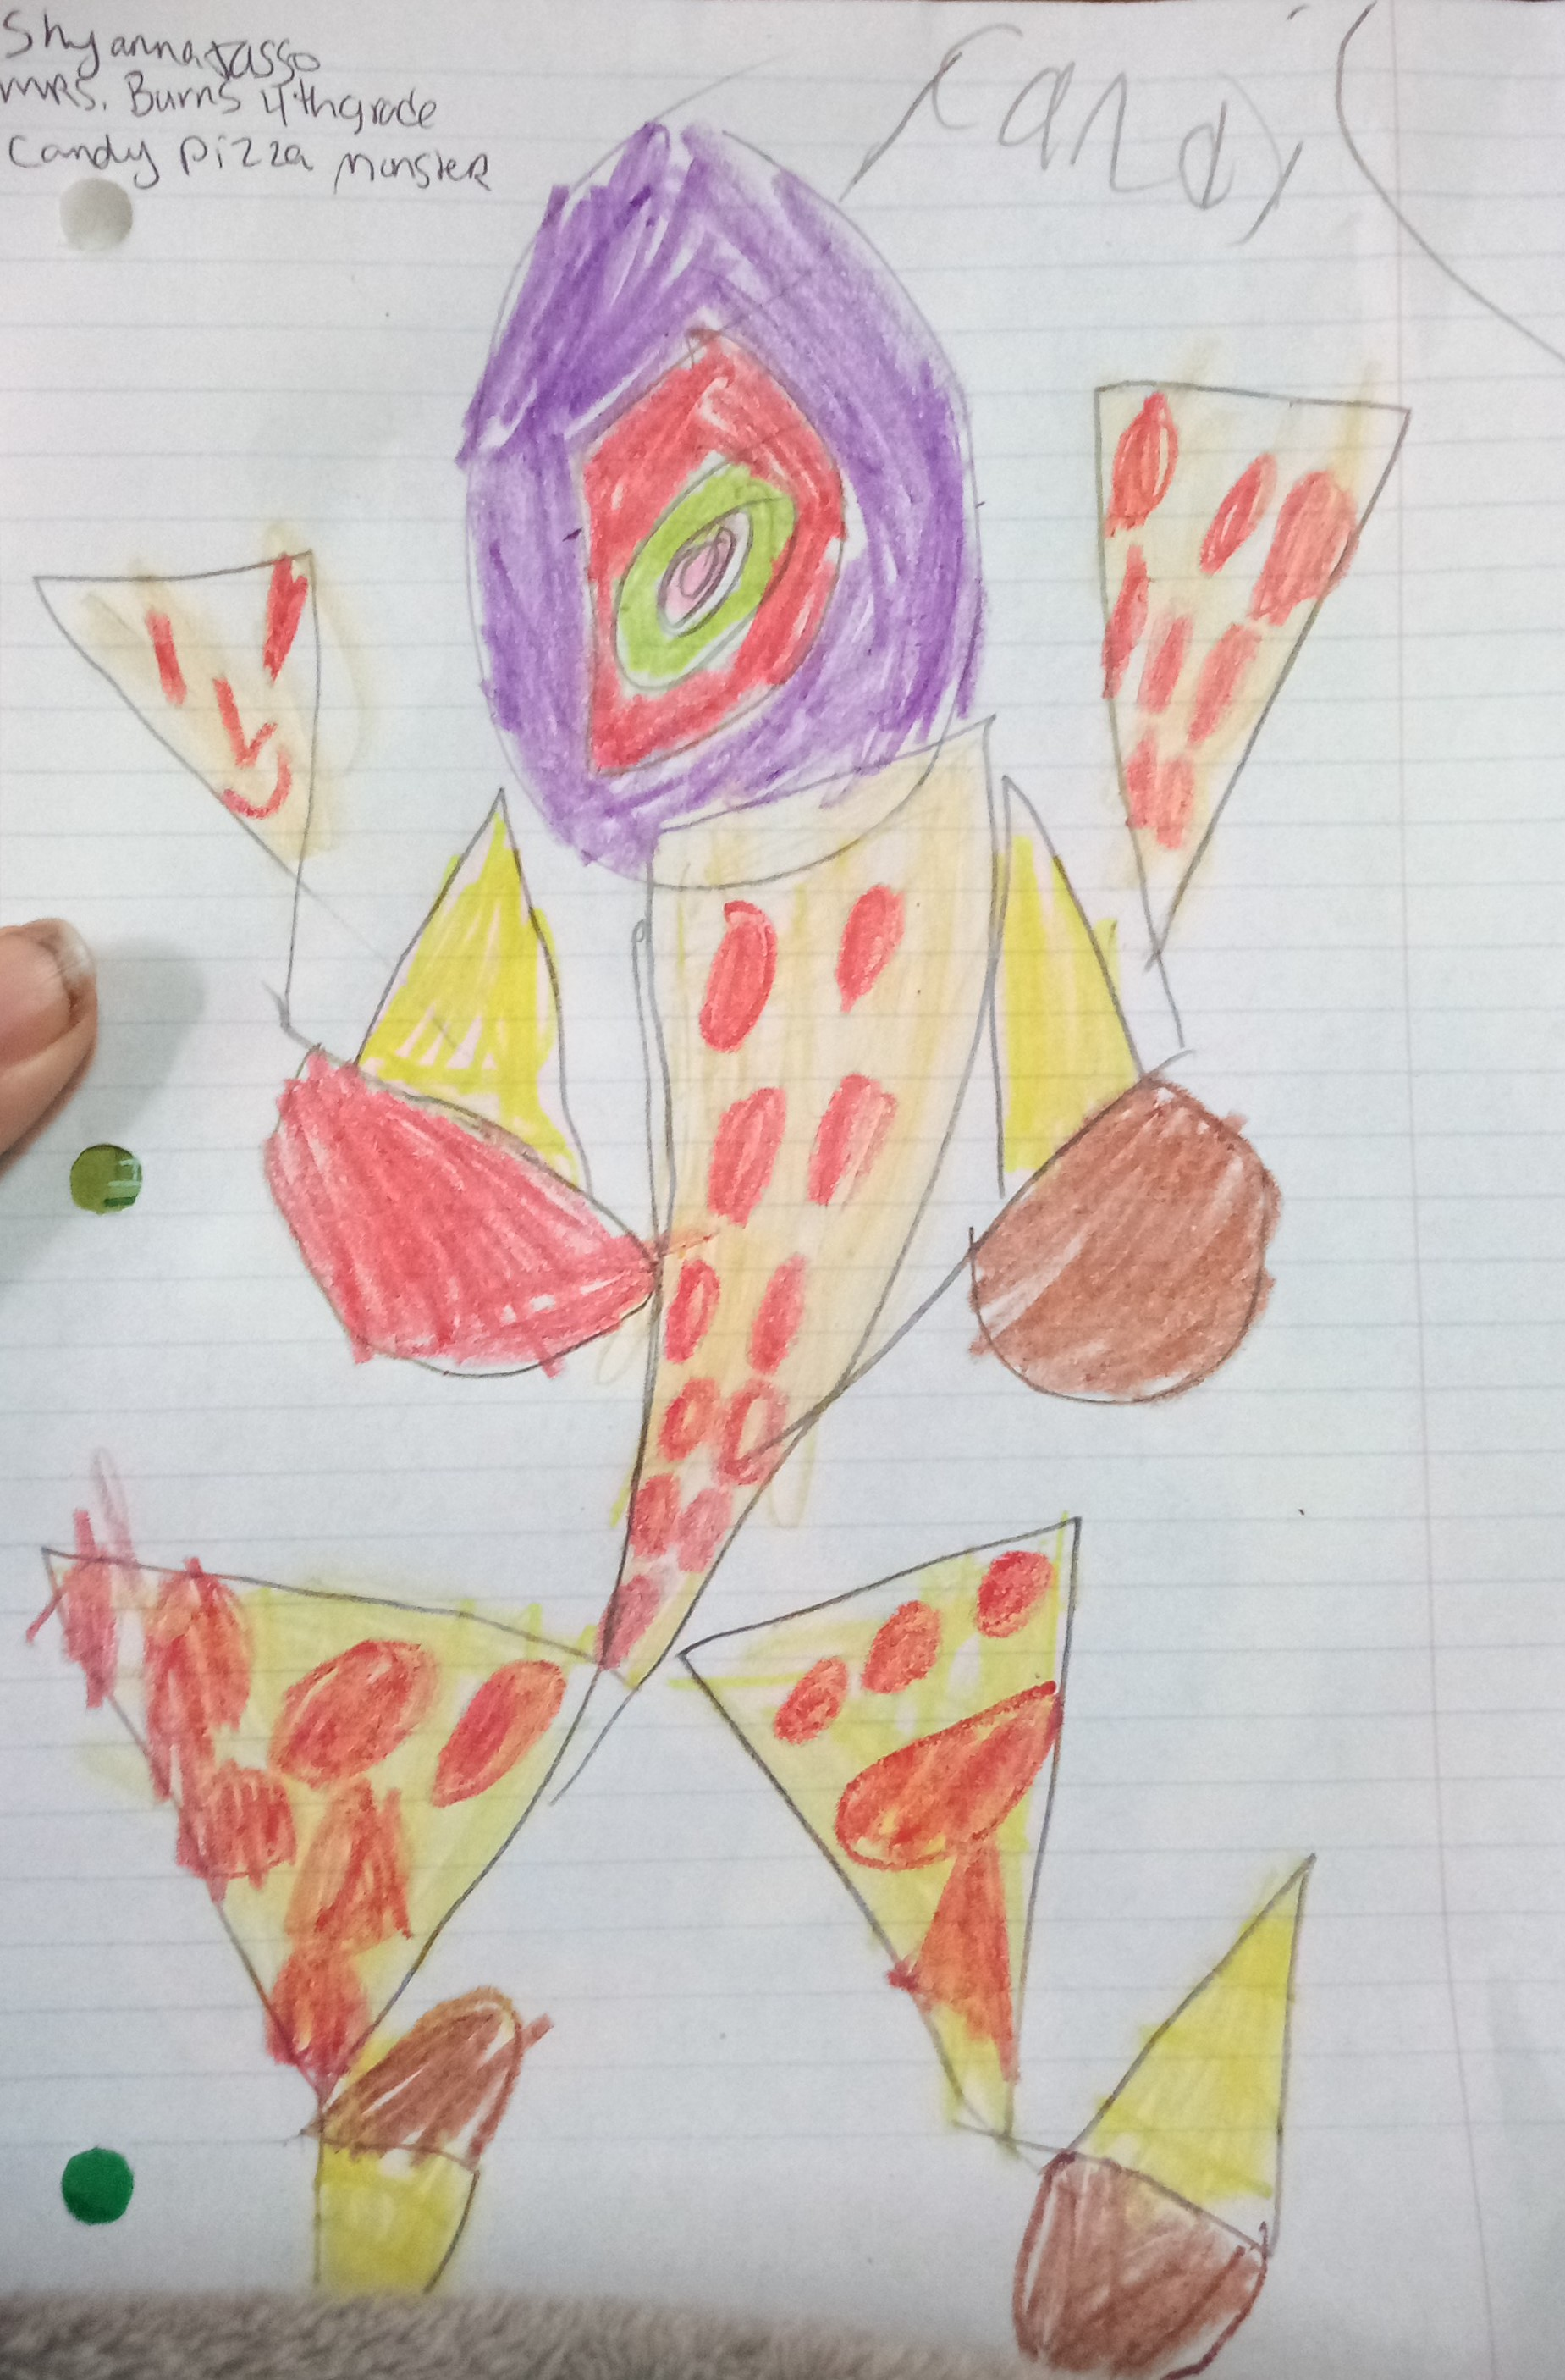 Candy Pizza Monster by Shyanna Jasso